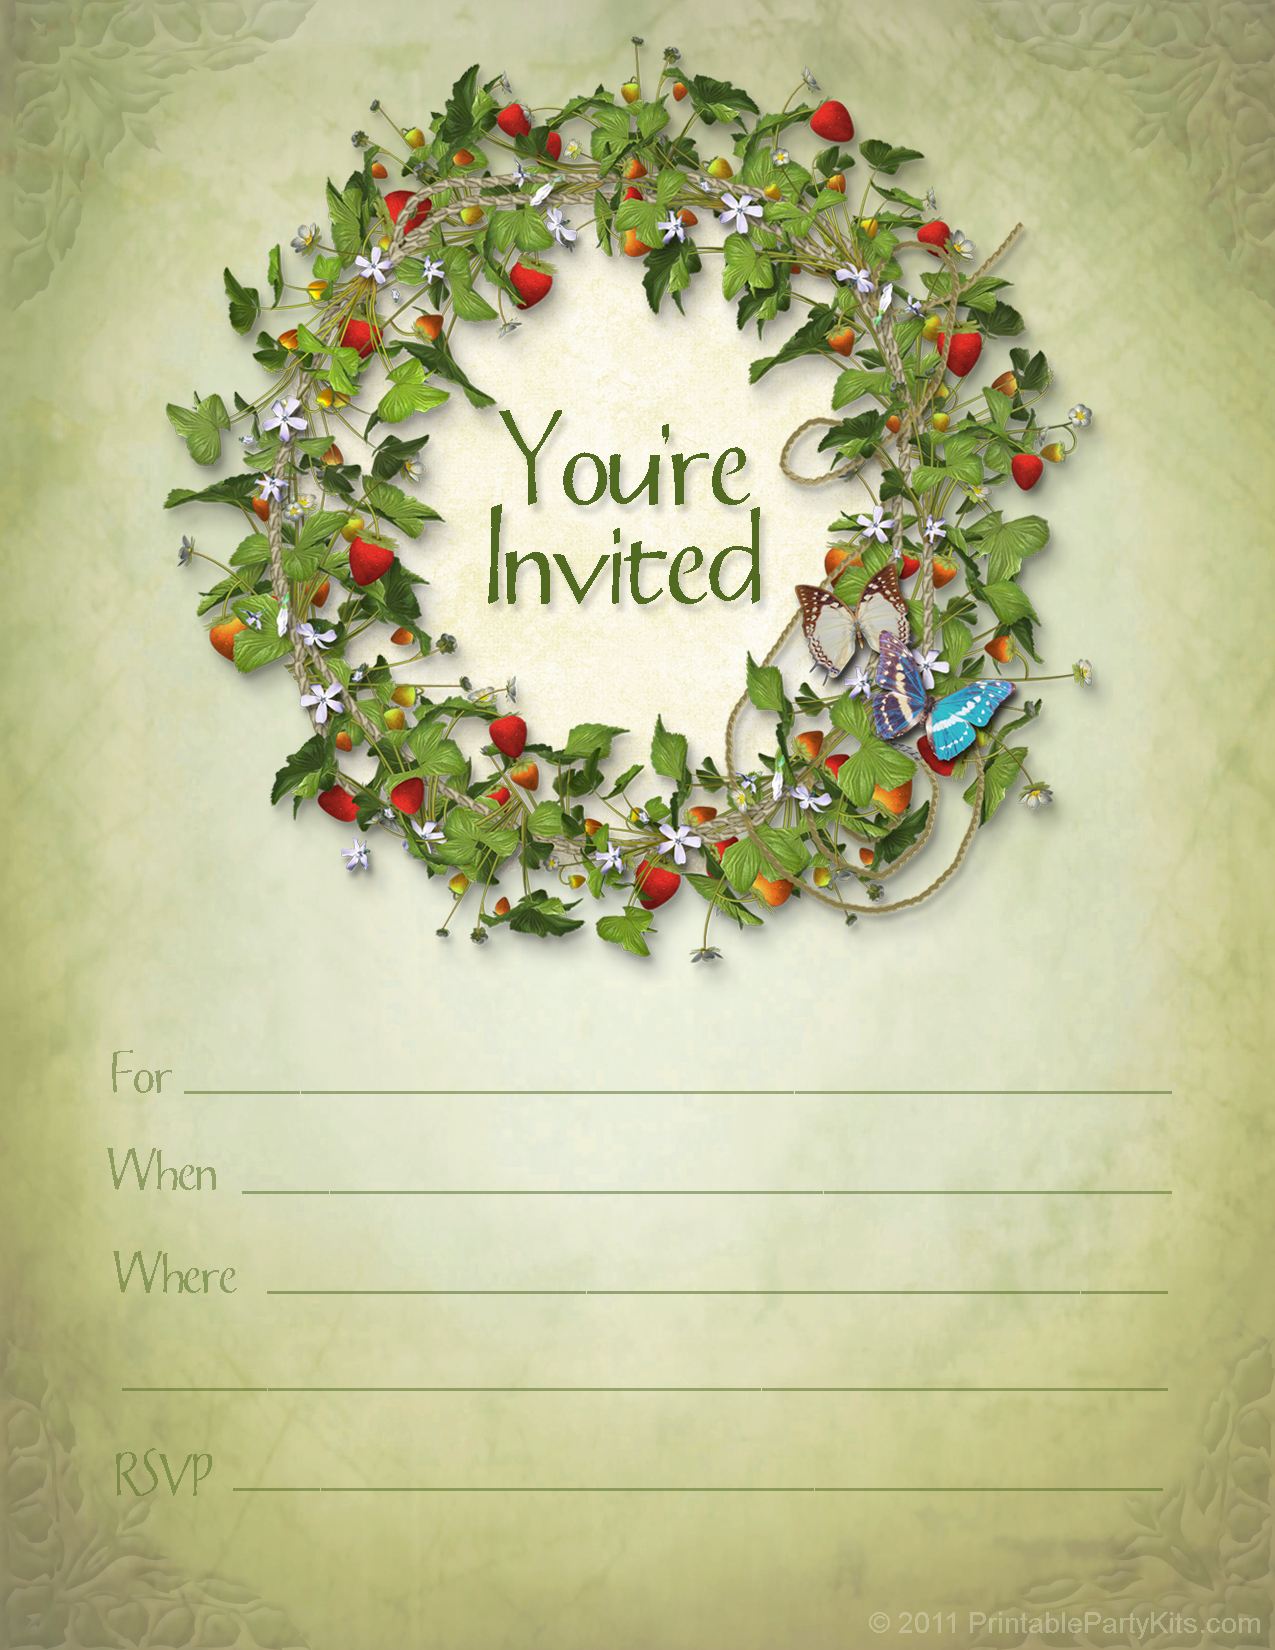 printable invitation templates free download .